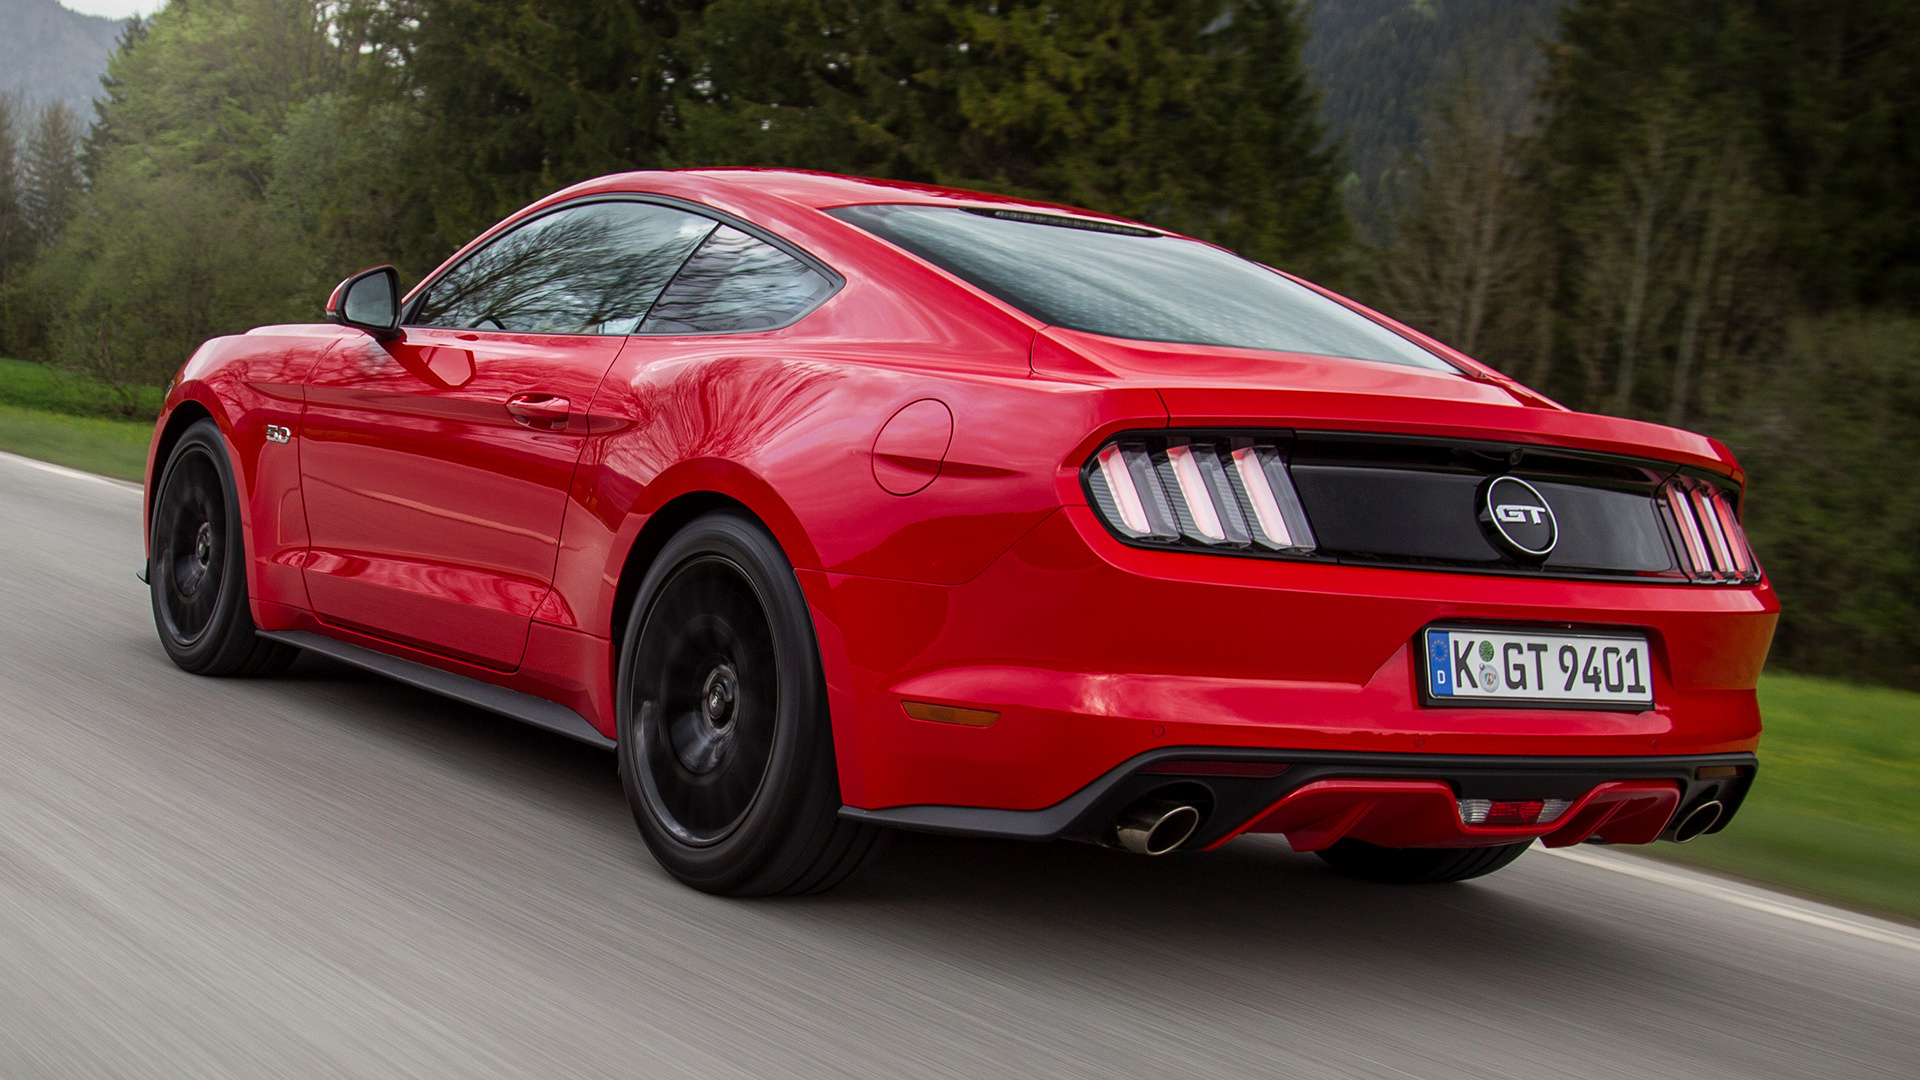 2015 Ford Mustang Gt Eu Wallpapers And Hd Images Car